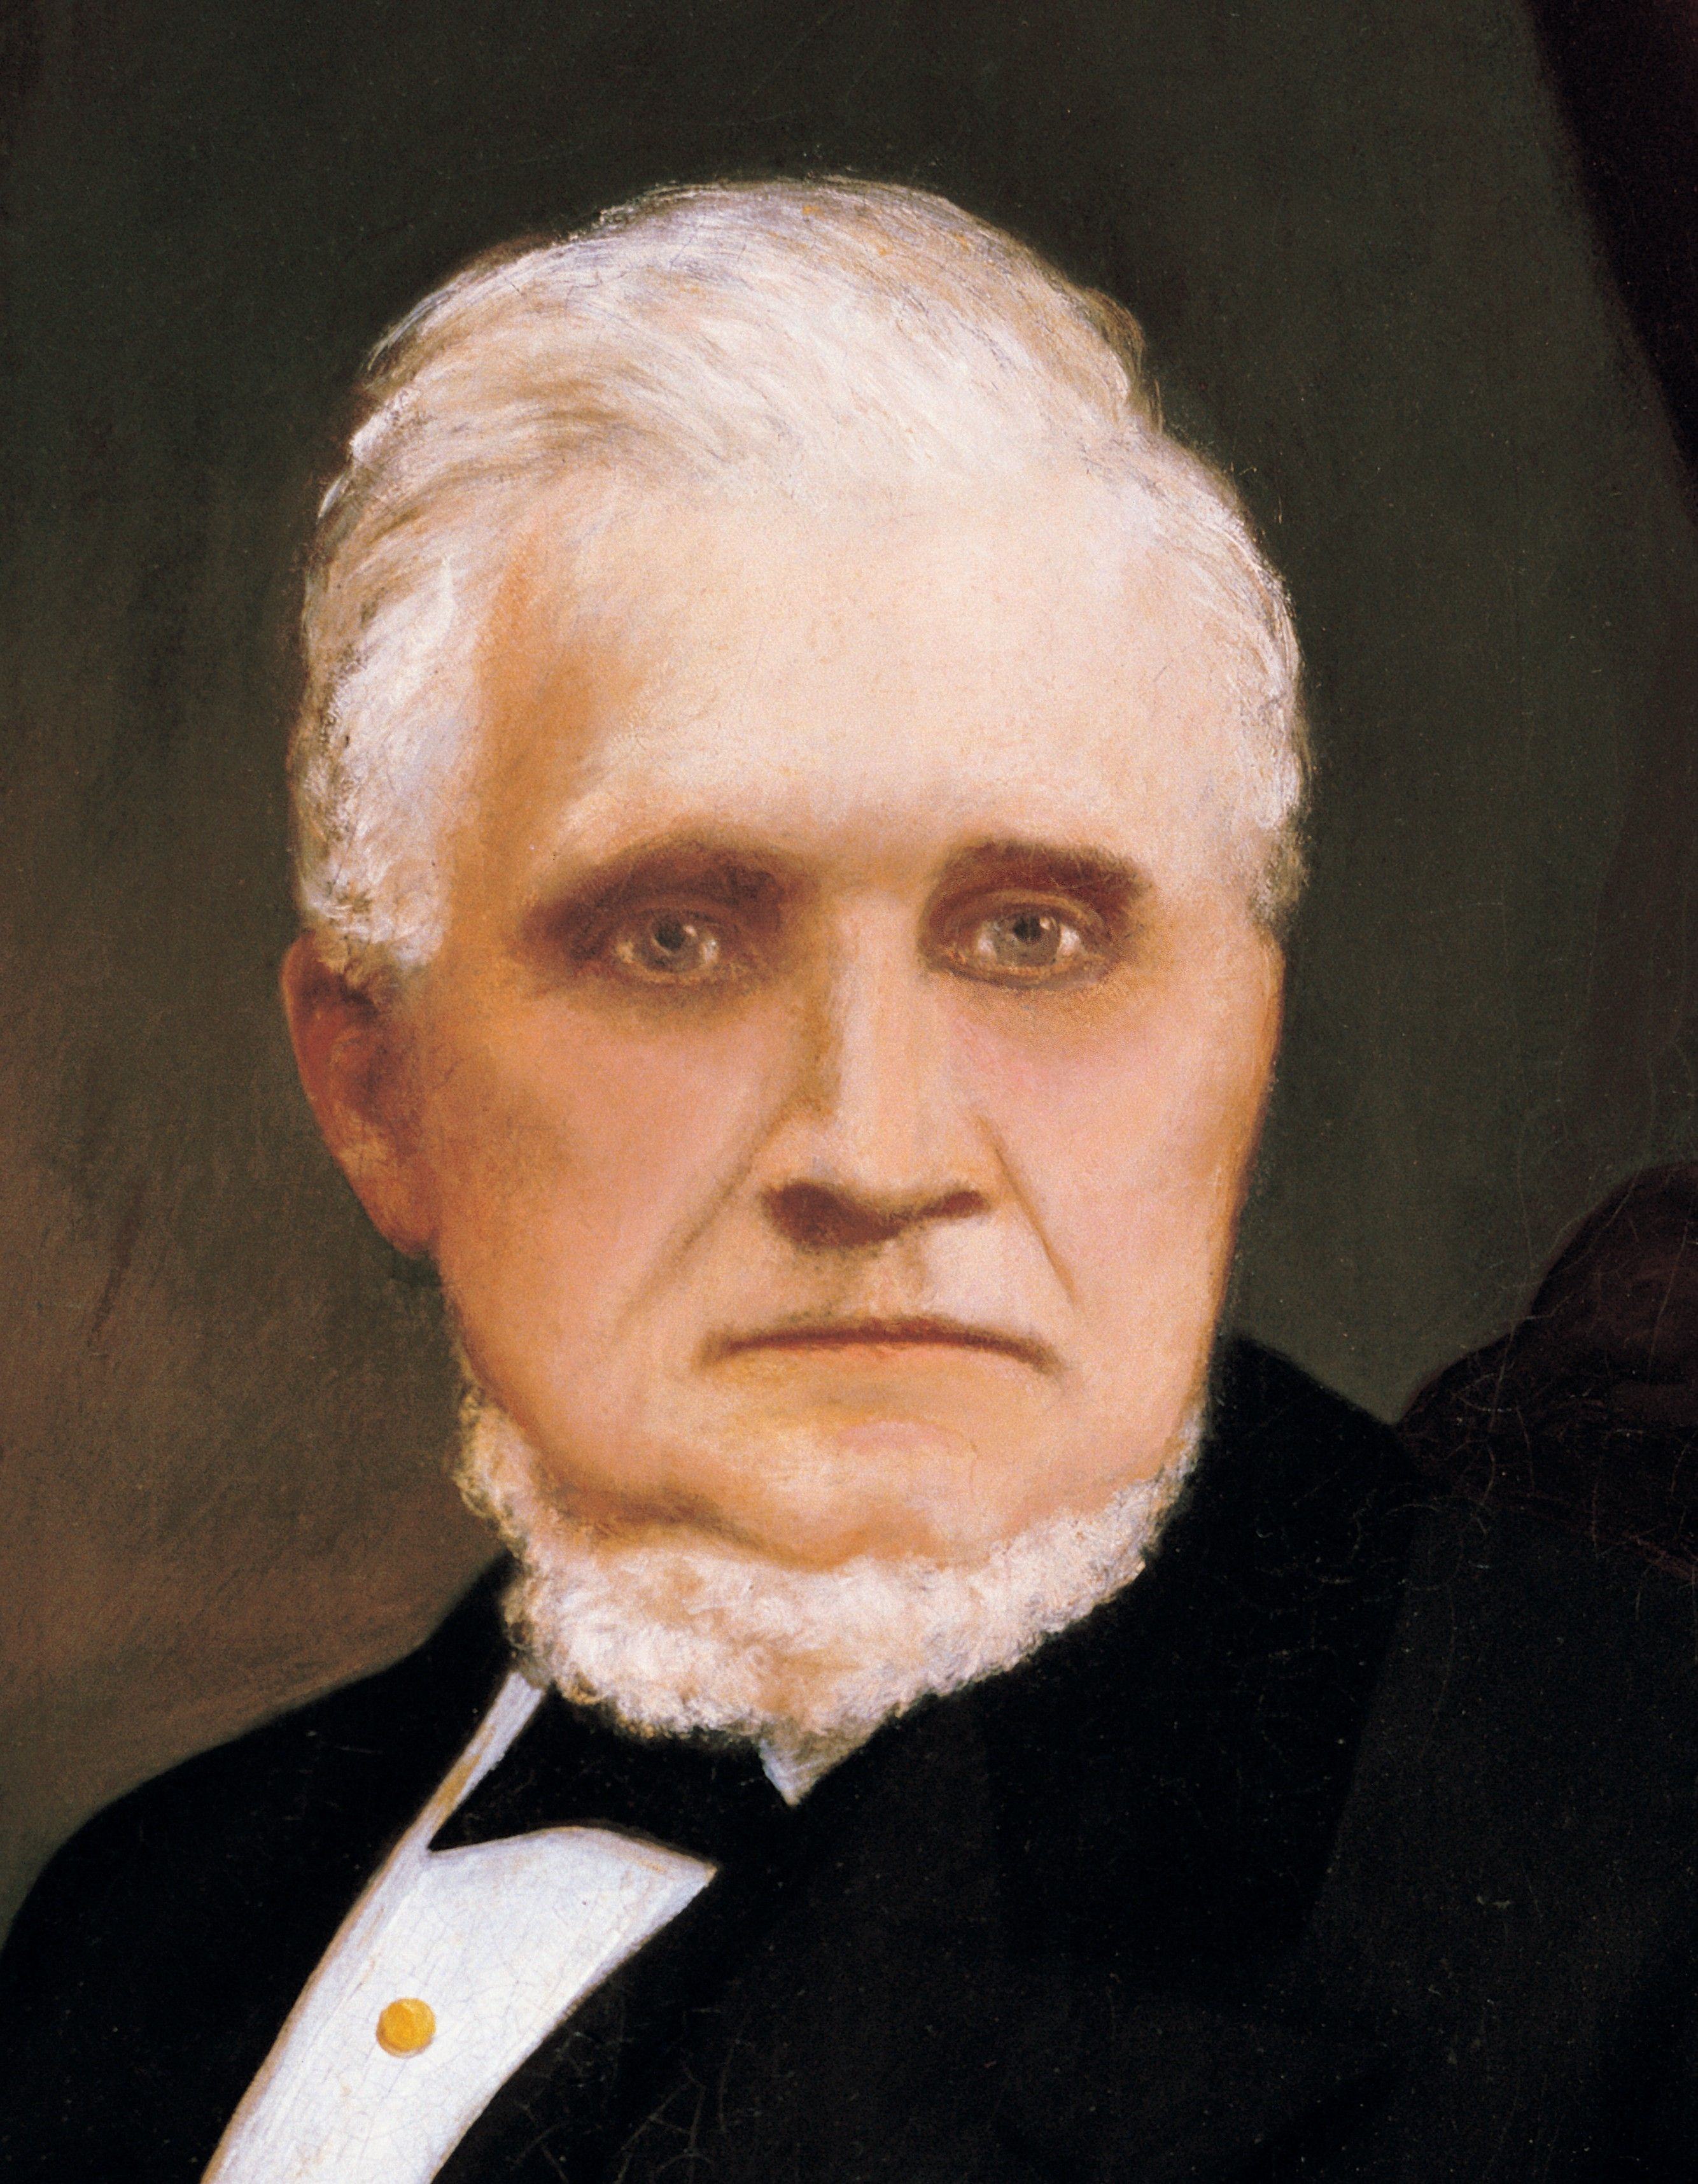 Detail from John Taylor, by A. Westwood; GAK 508; Our Heritage, 93–98. President John Taylor served as the third President of the Church from 1880 to 1887.